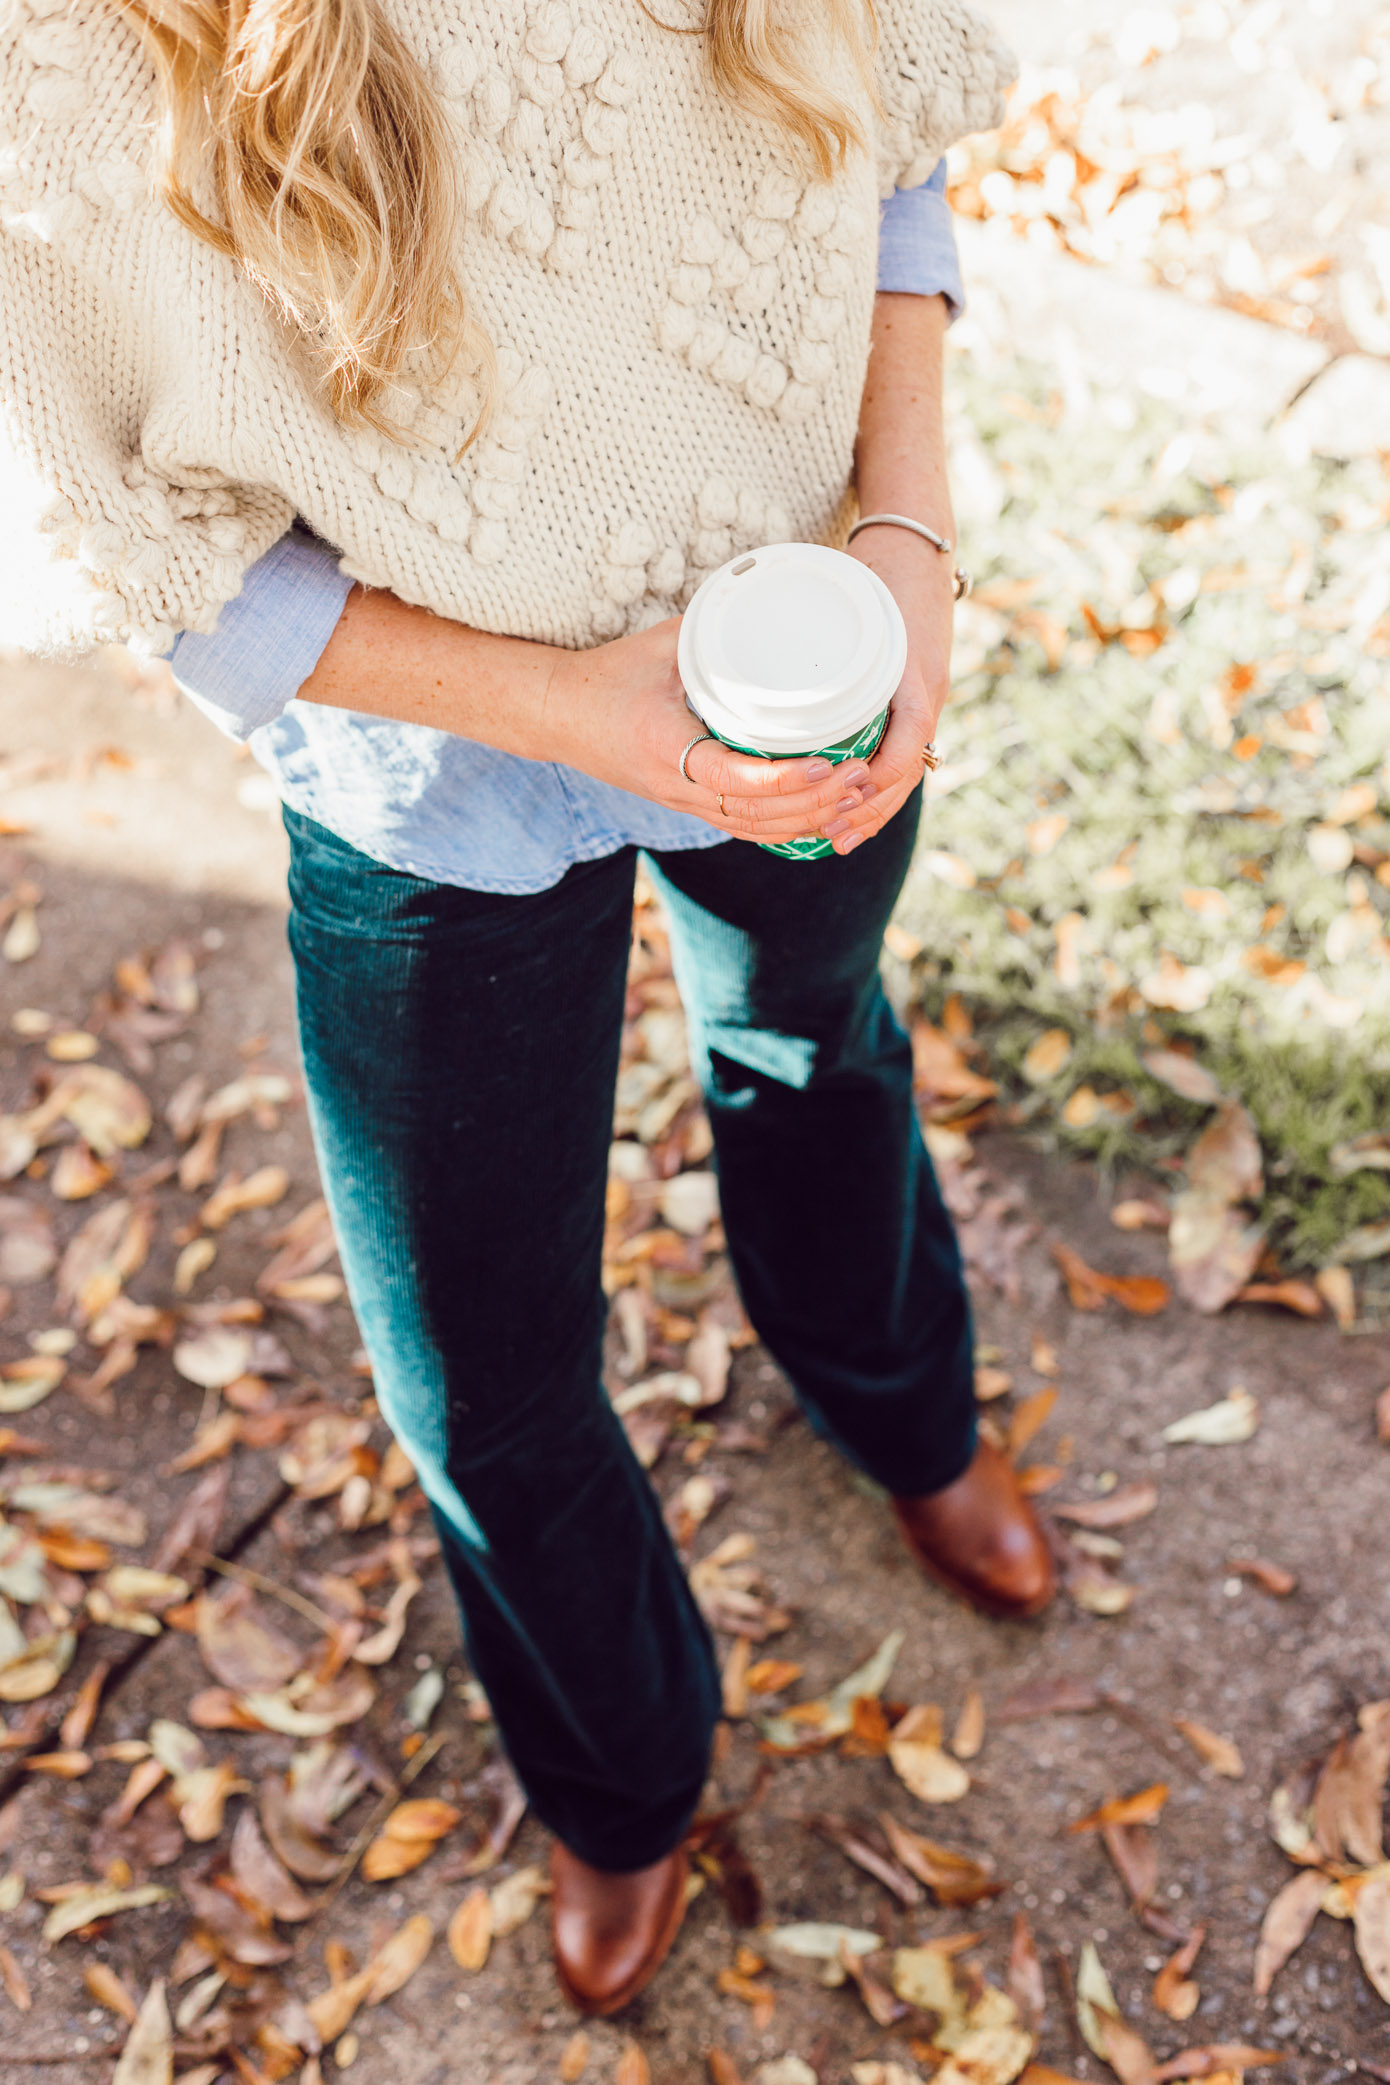 Teal Corduroy Pants | Styling Corduroys for Winter | Must Try Winter Trend featured on Louella Reese Life & Style Blog